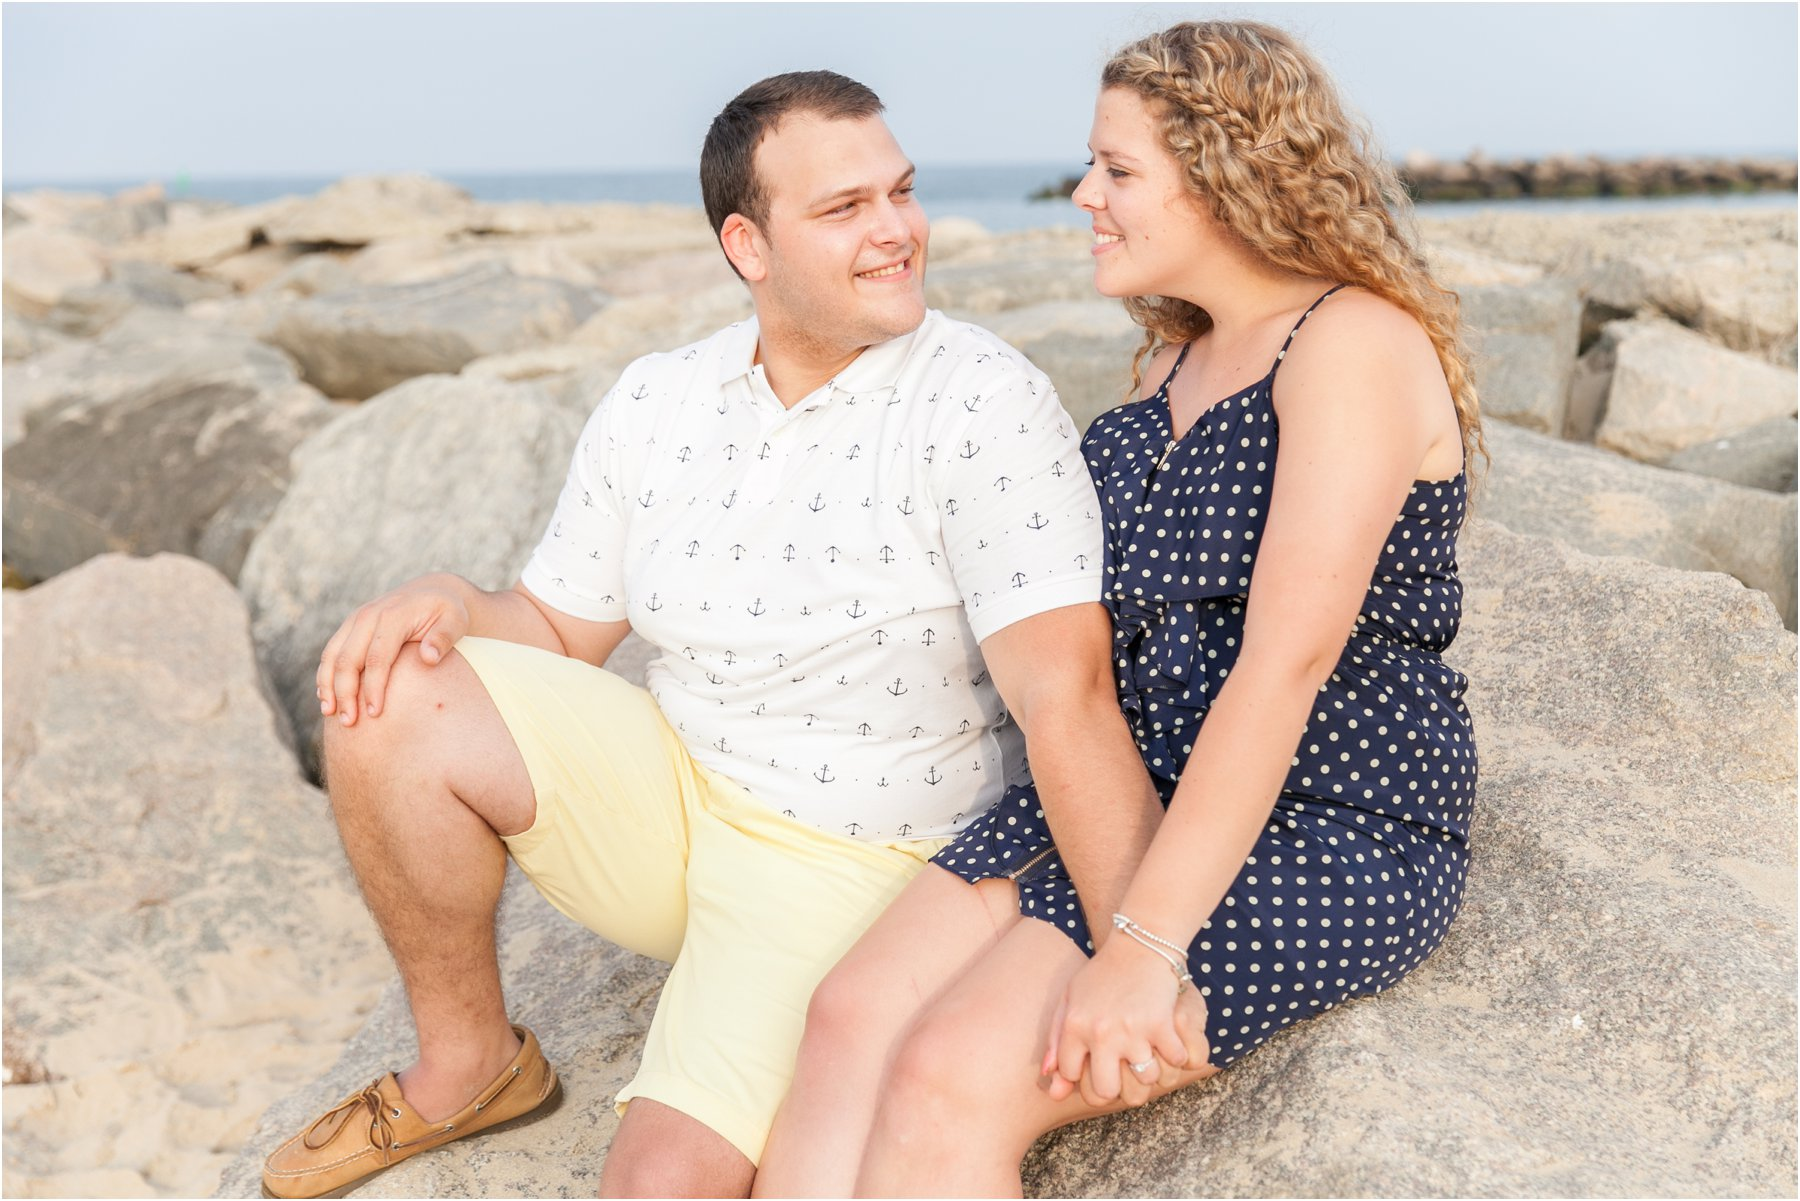 engagement_beach_Photography_Jessica_Ryan_Photography_virginia_virginia_beach_0305